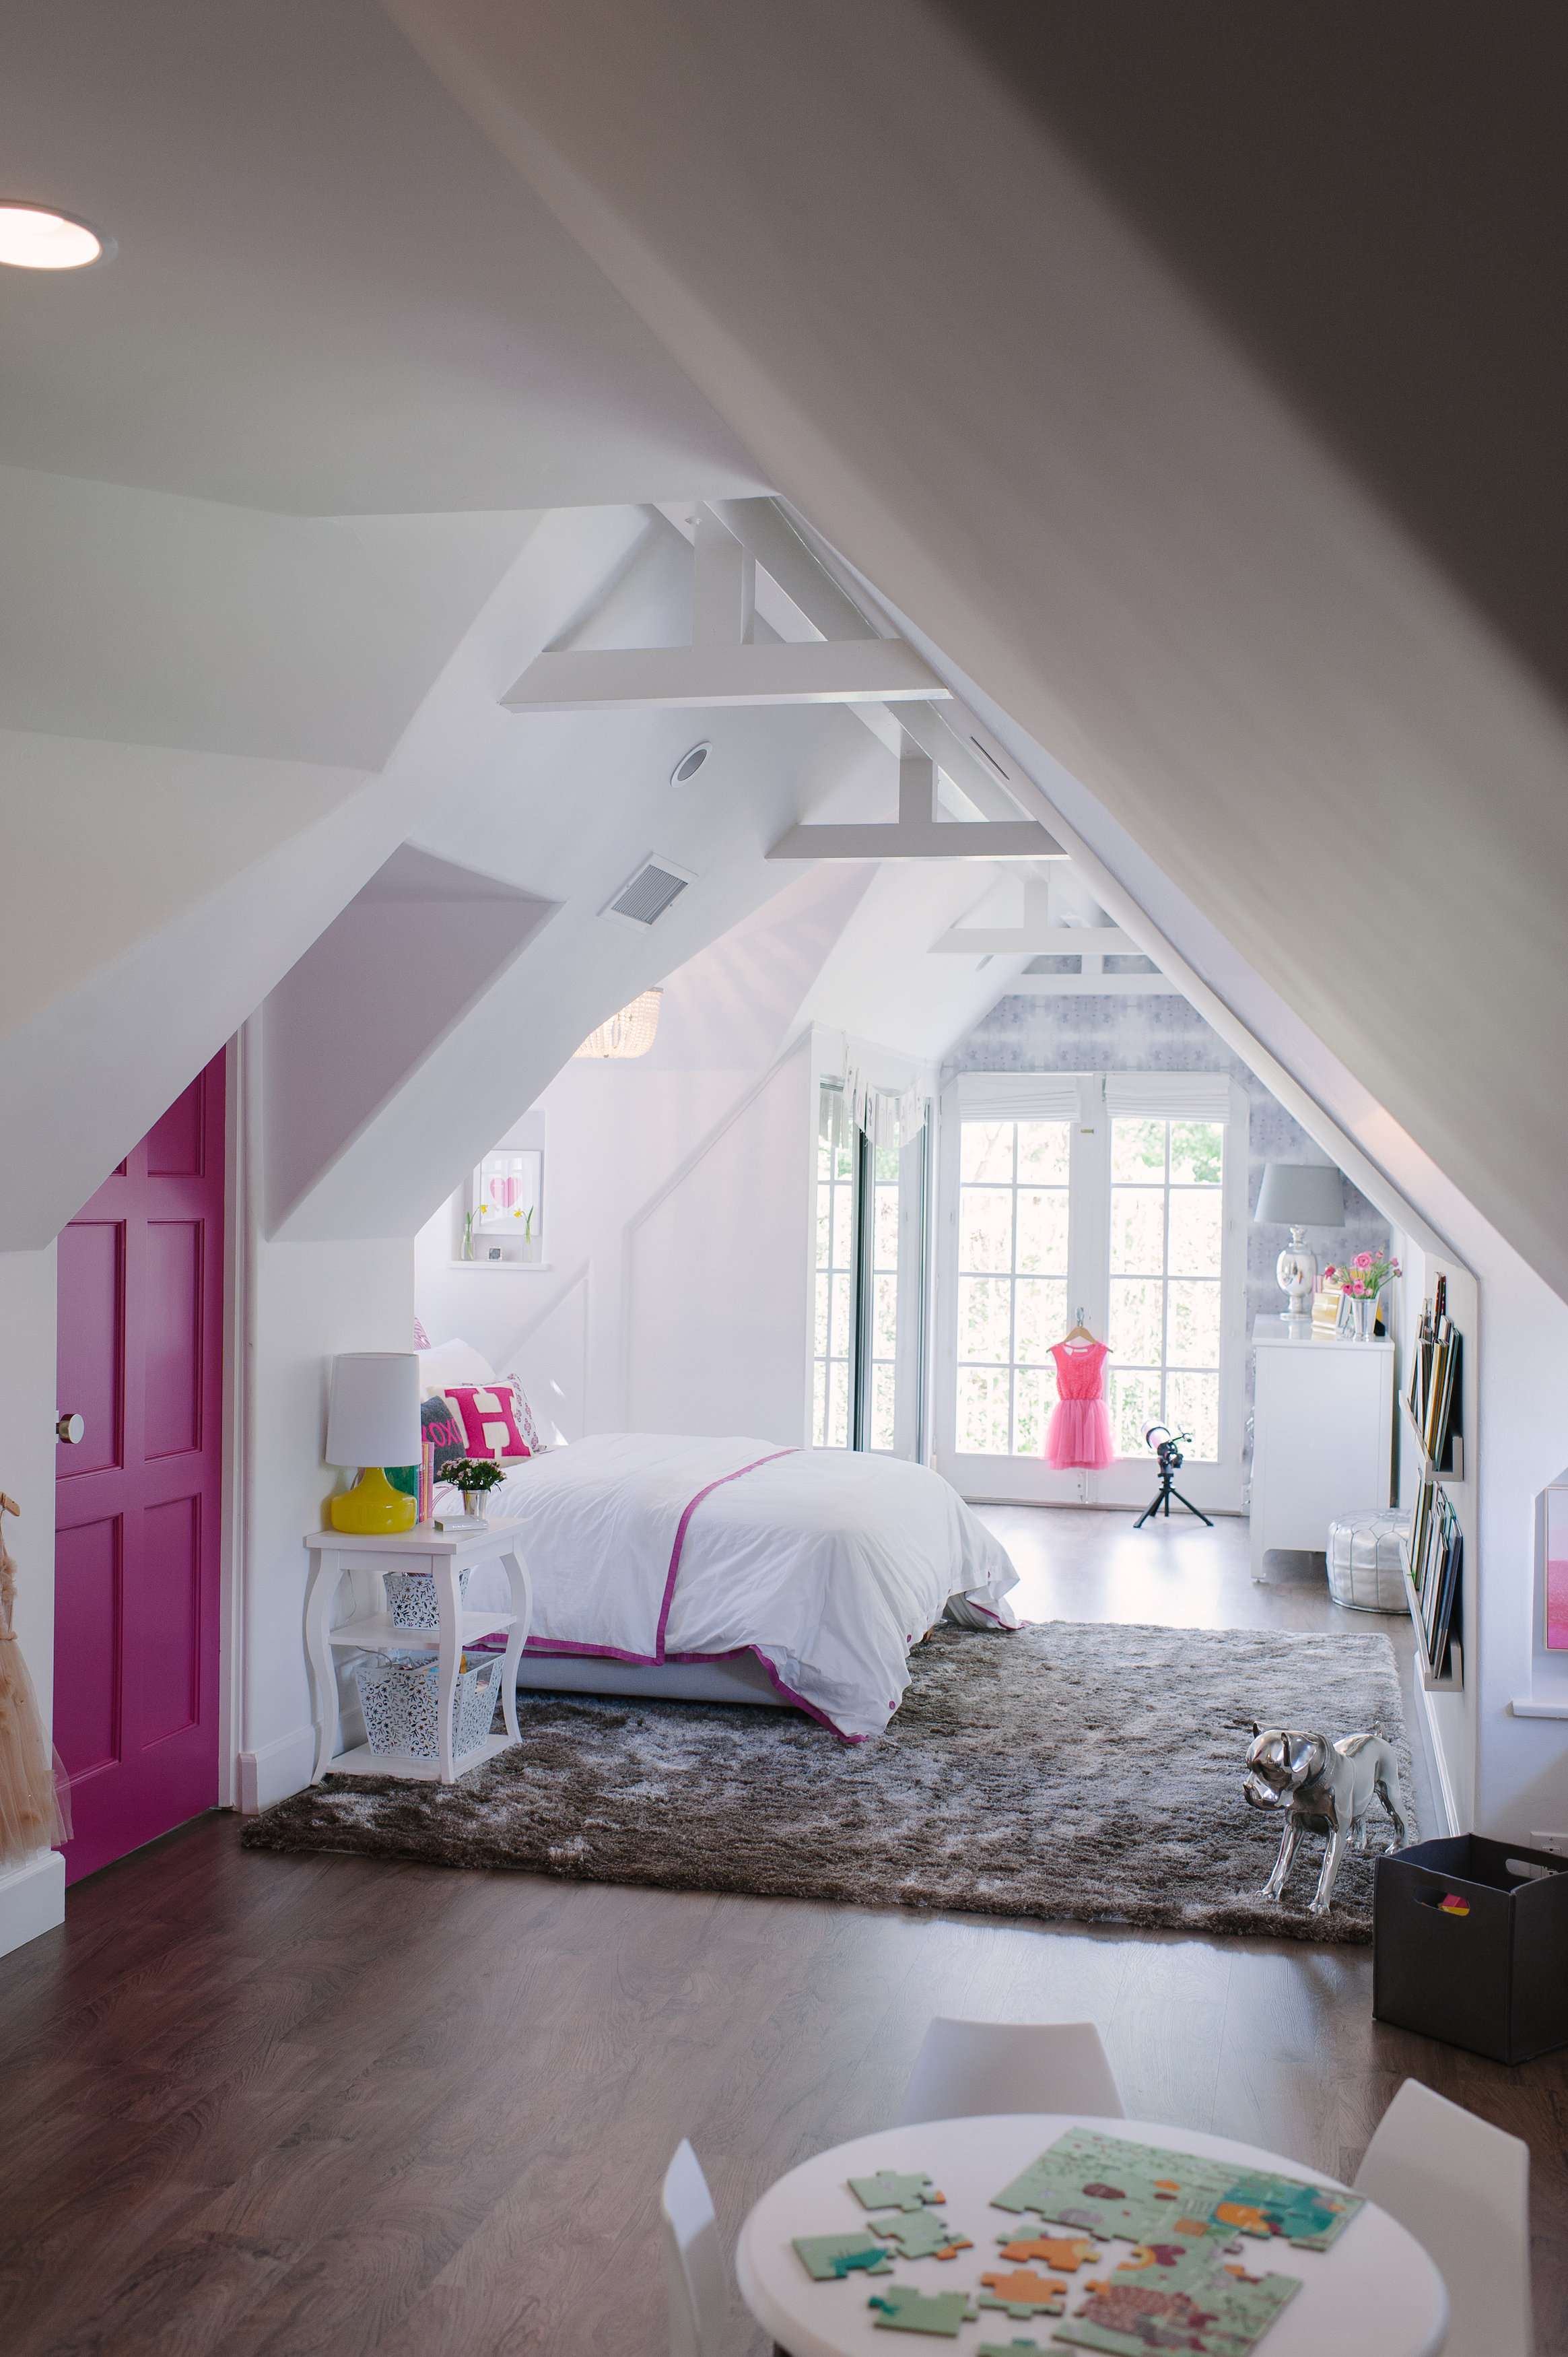 """Six-year-old daughter Harper's room is sweet, but not babyish, with white walls that play up its architectural details and a fun pop of magenta on the door. """"This room has a beautiful little dollhouse vibe now, but it'll be a great space to grow into,"""" says designer Kim Lewis."""